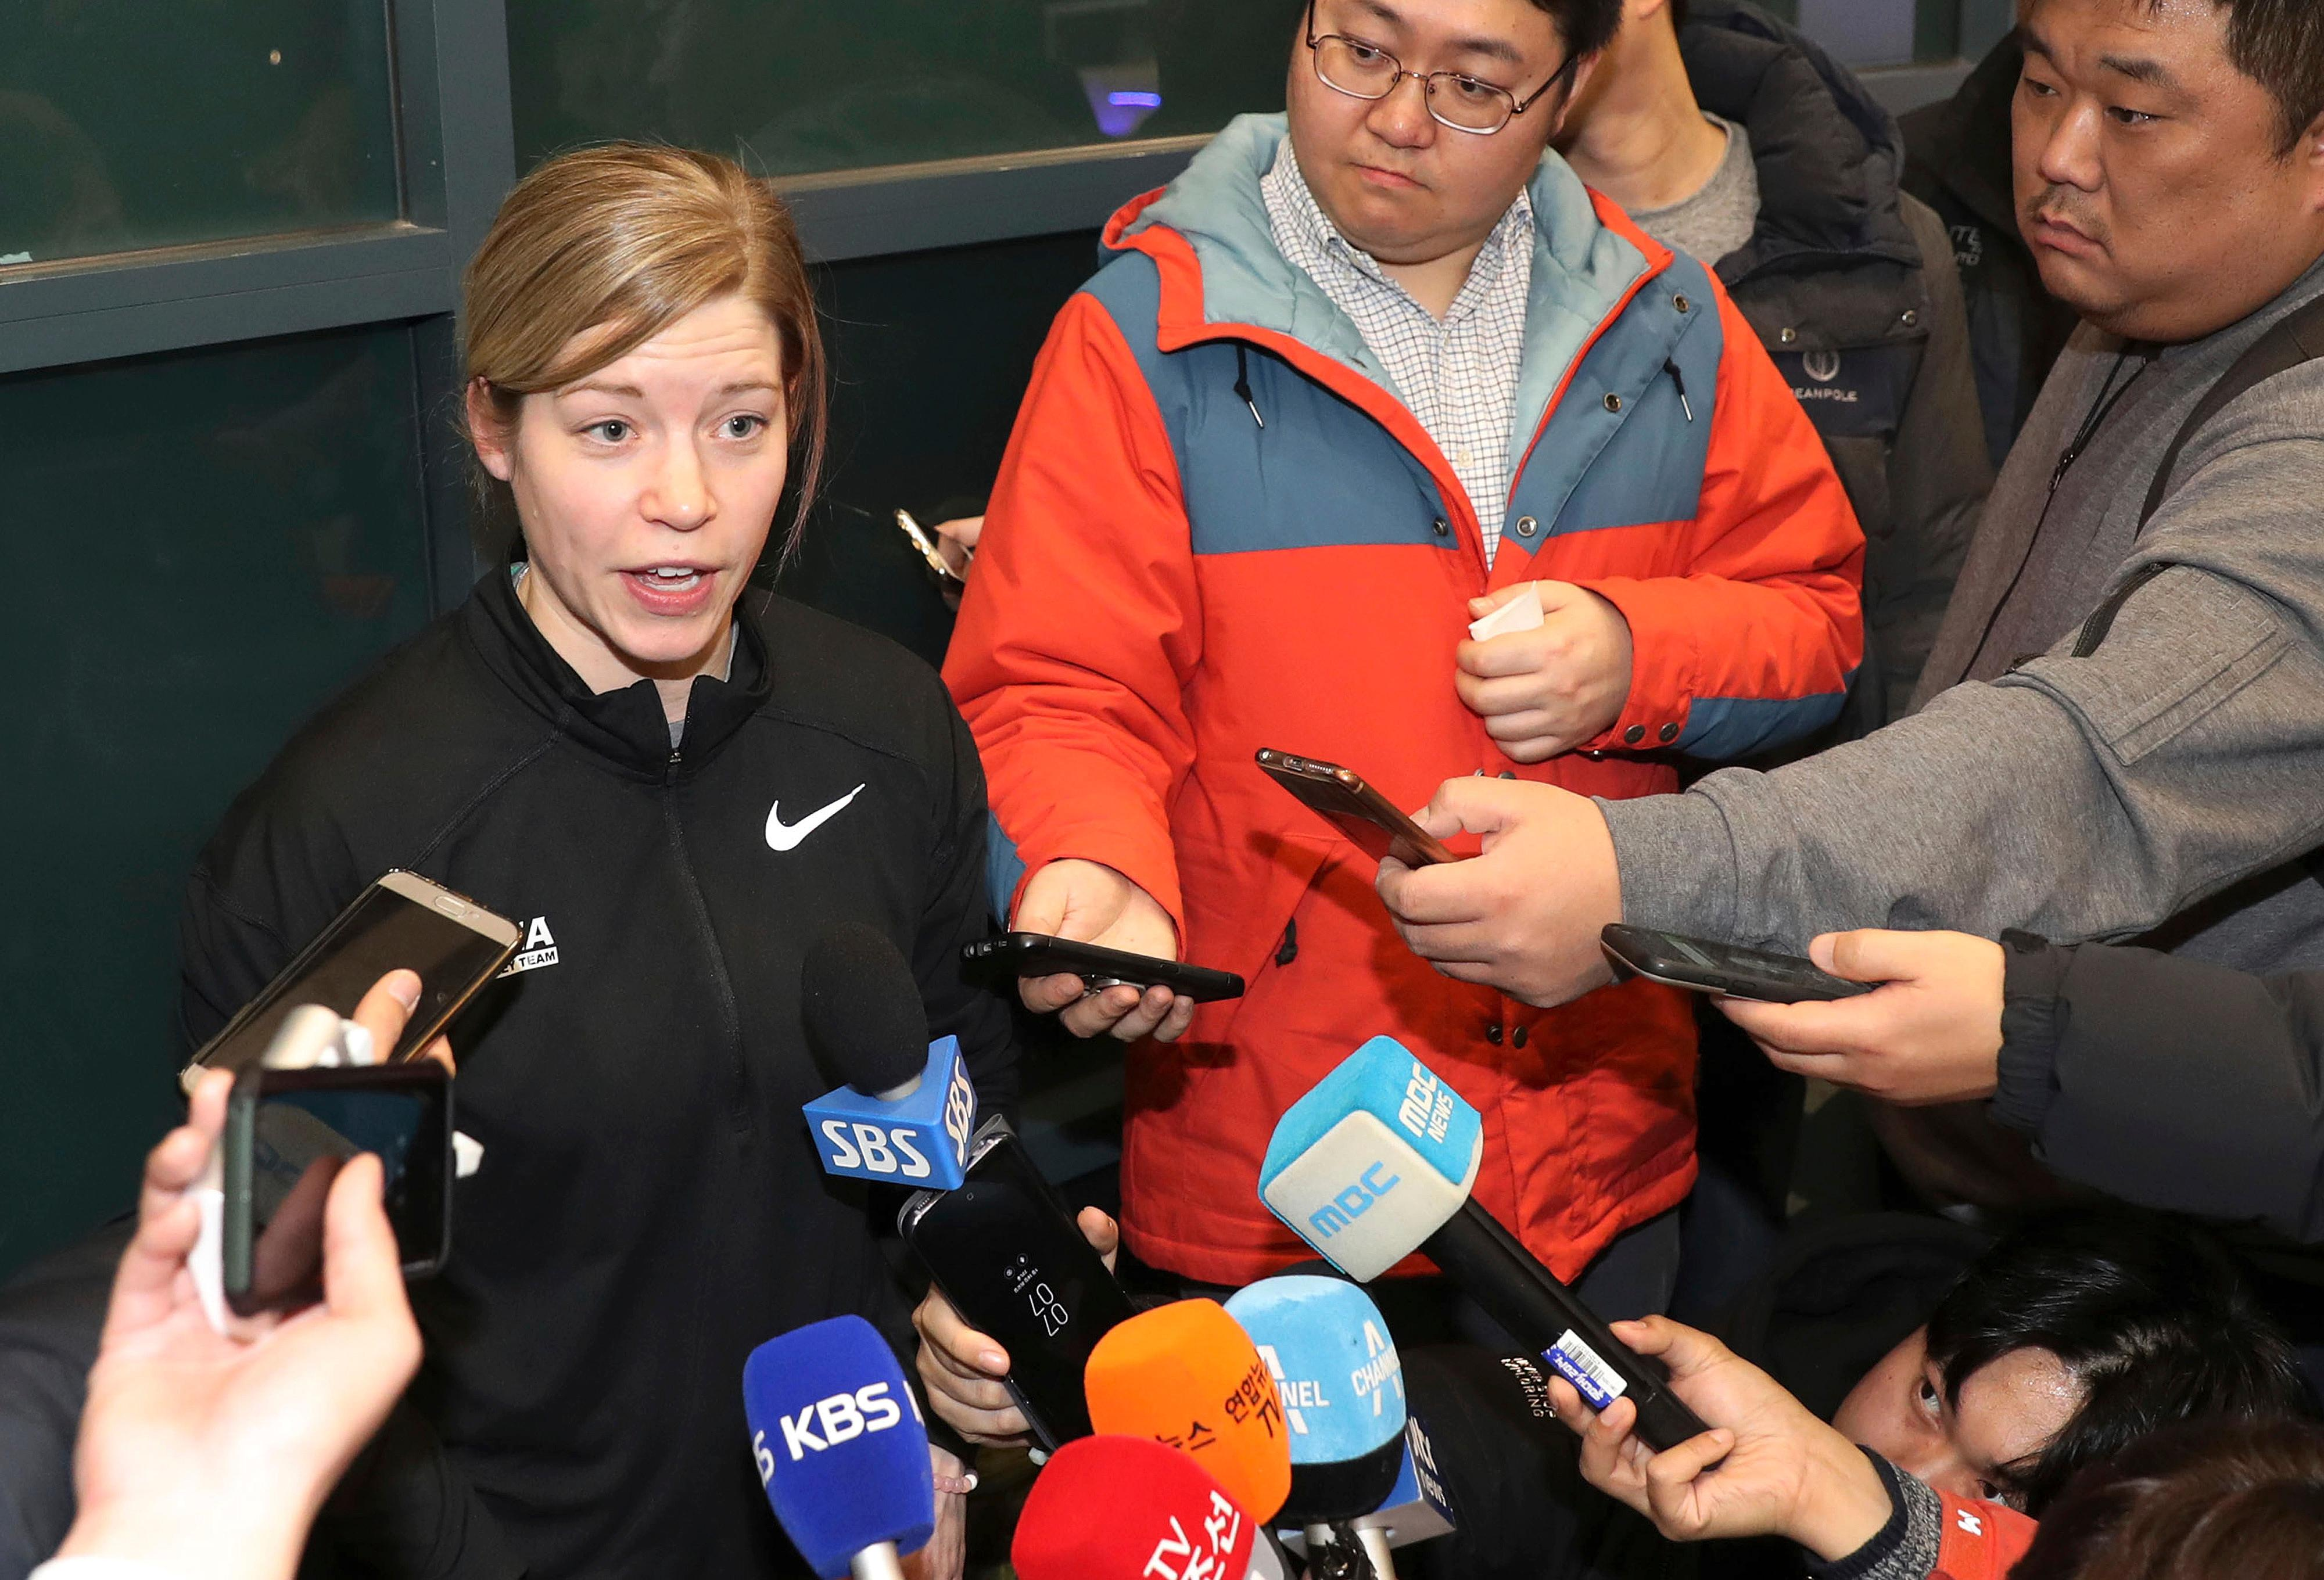 "In this Tuesday, Jan. 16, 2018, photo, South Korean women's hockey team head coach Sarah Murray speaks as she returns from the team's U.S. training camp, at Incehon International Airport in Incheon, South Korea. There is growing concern in South Korea that a proposal to form a joint women's hockey team with North Korea for the Olympics could be bad for the South Korean players. ""Adding somebody so close to the Olympics is a little bit dangerous just for team chemistry because the girls have been together for so long,"" she said. (Ha Sa-hun/Yonhap via AP)"